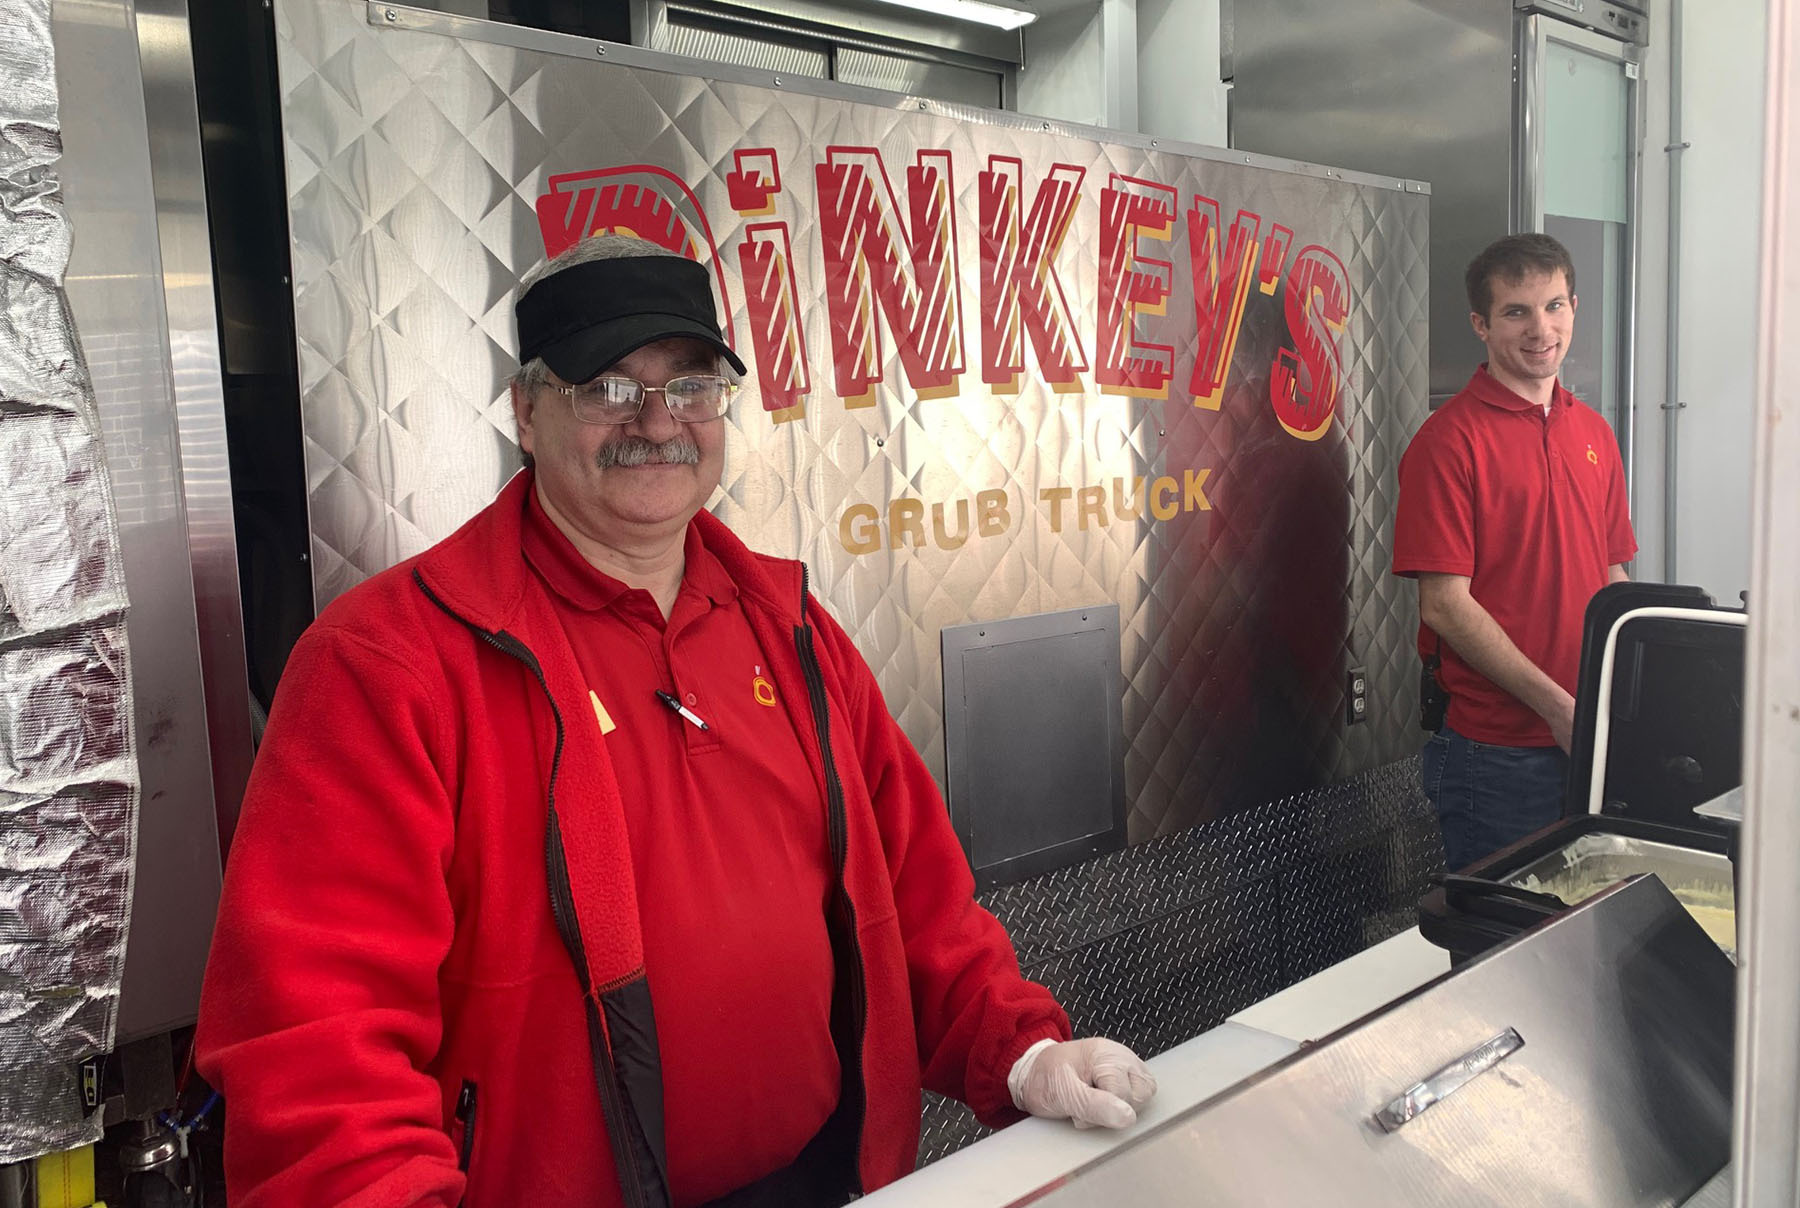 Food service managers in the Dinkey's food truck